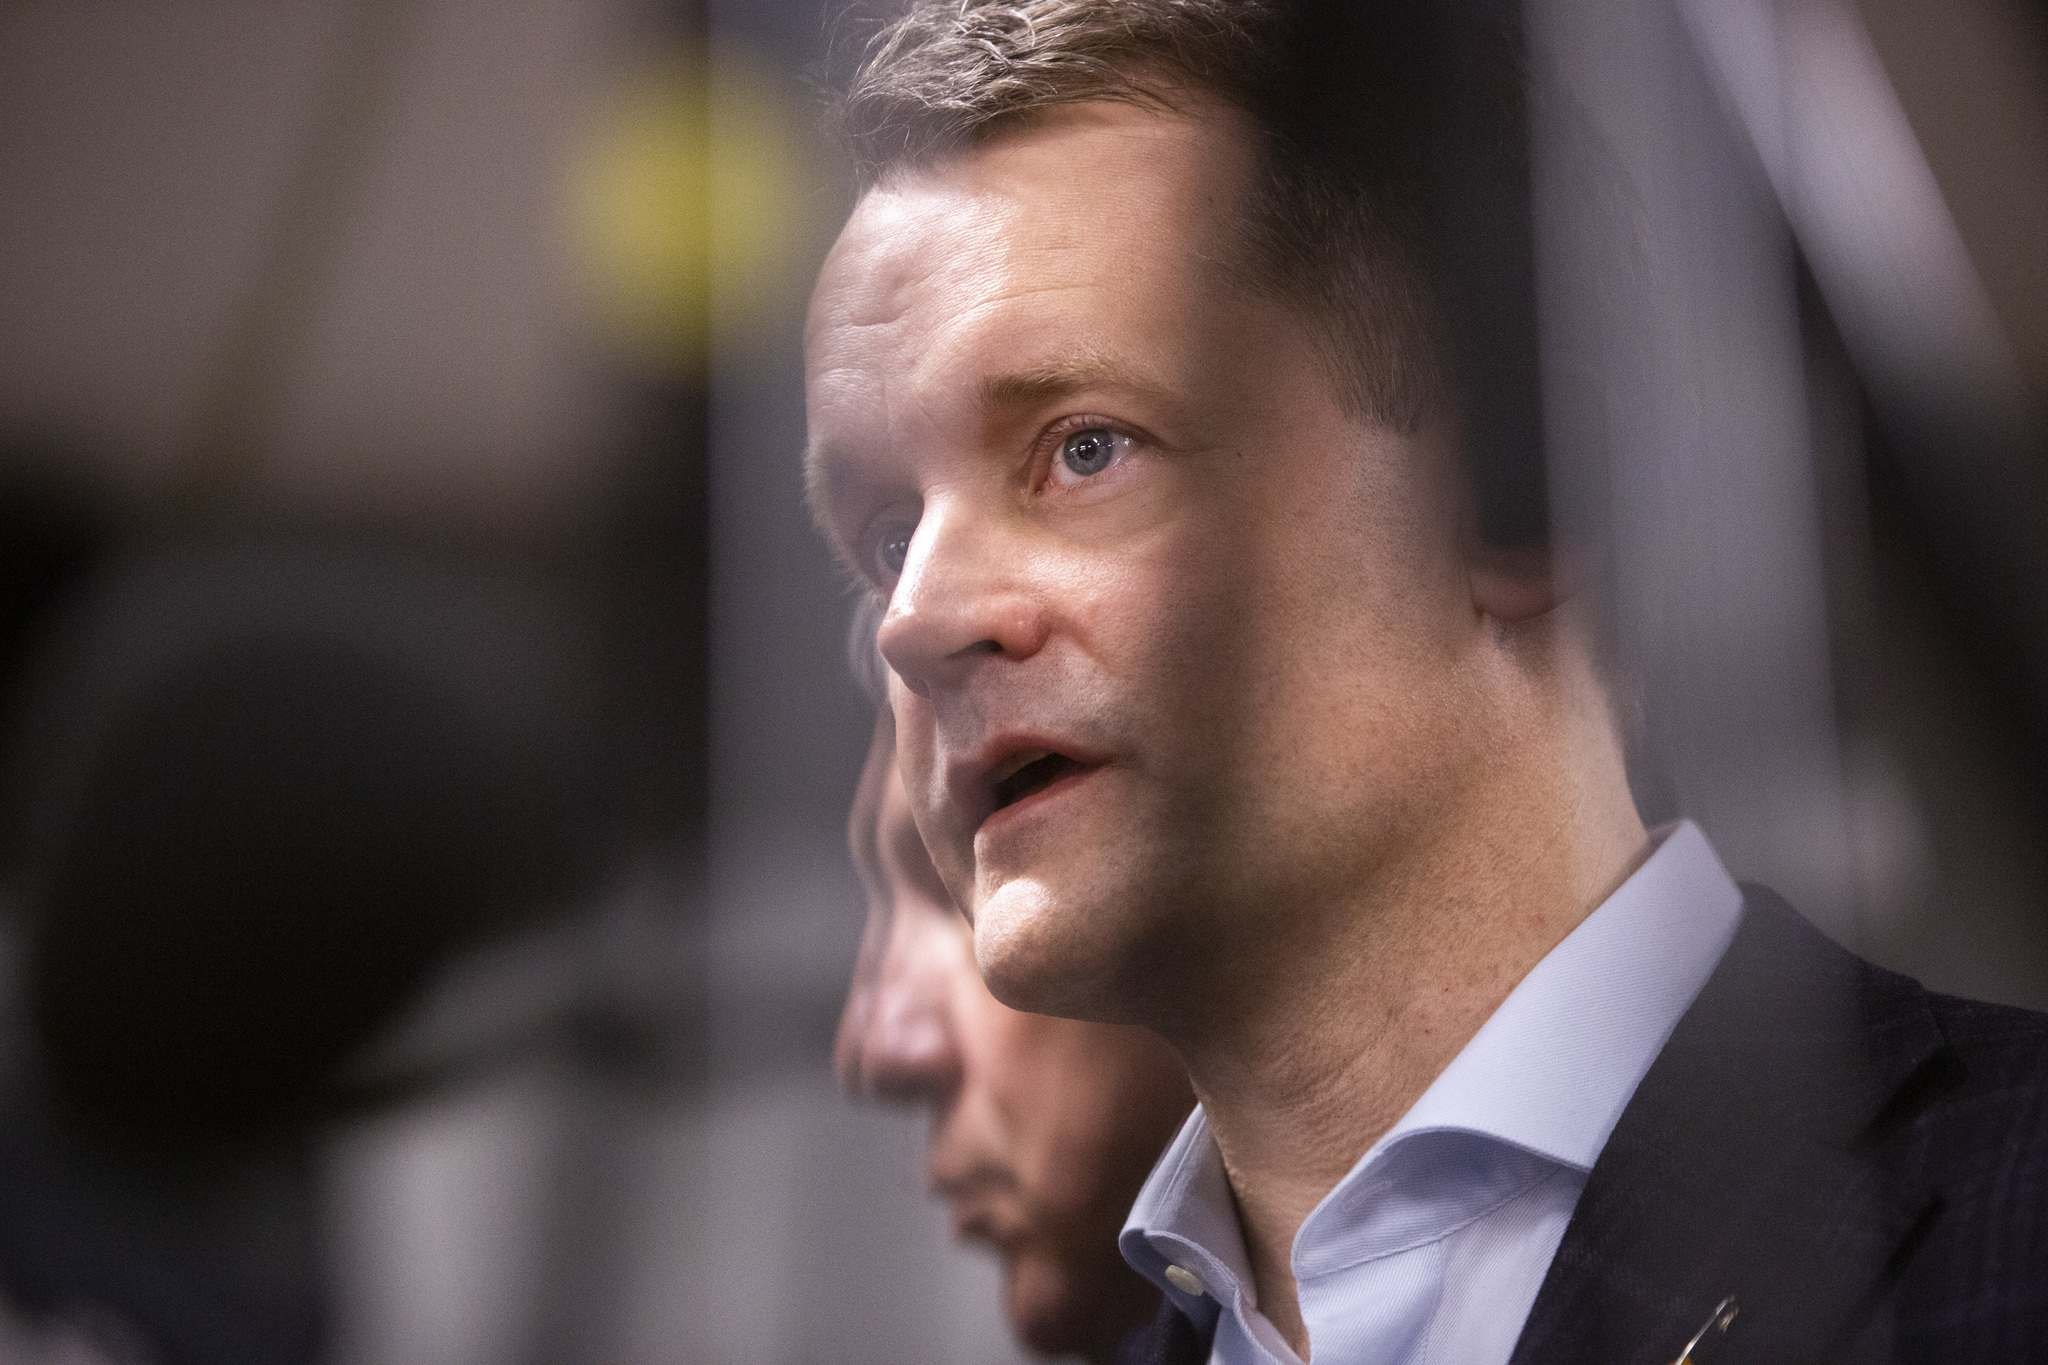 The Liberals are still reeling from the SNC-Lavalin scandal, but Seamus O'Regan says people haven't been asking him about it. (Mikaela MacKenzie / Winnipeg Free Press)</p>